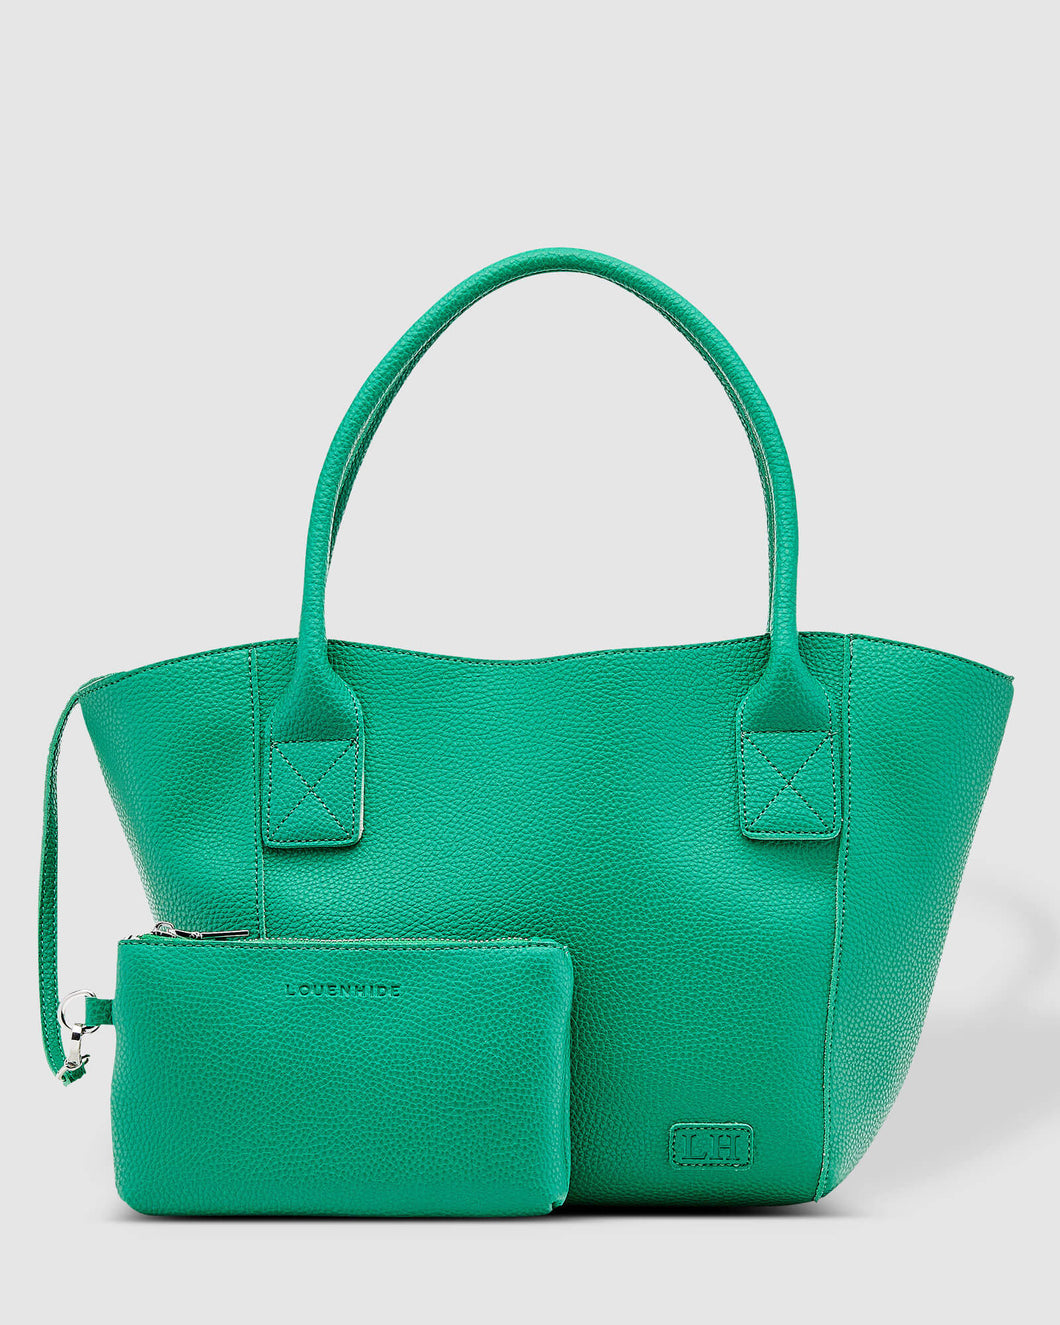 LOUENHIDE BABY SWITCH TOTE BAG -  GREEN